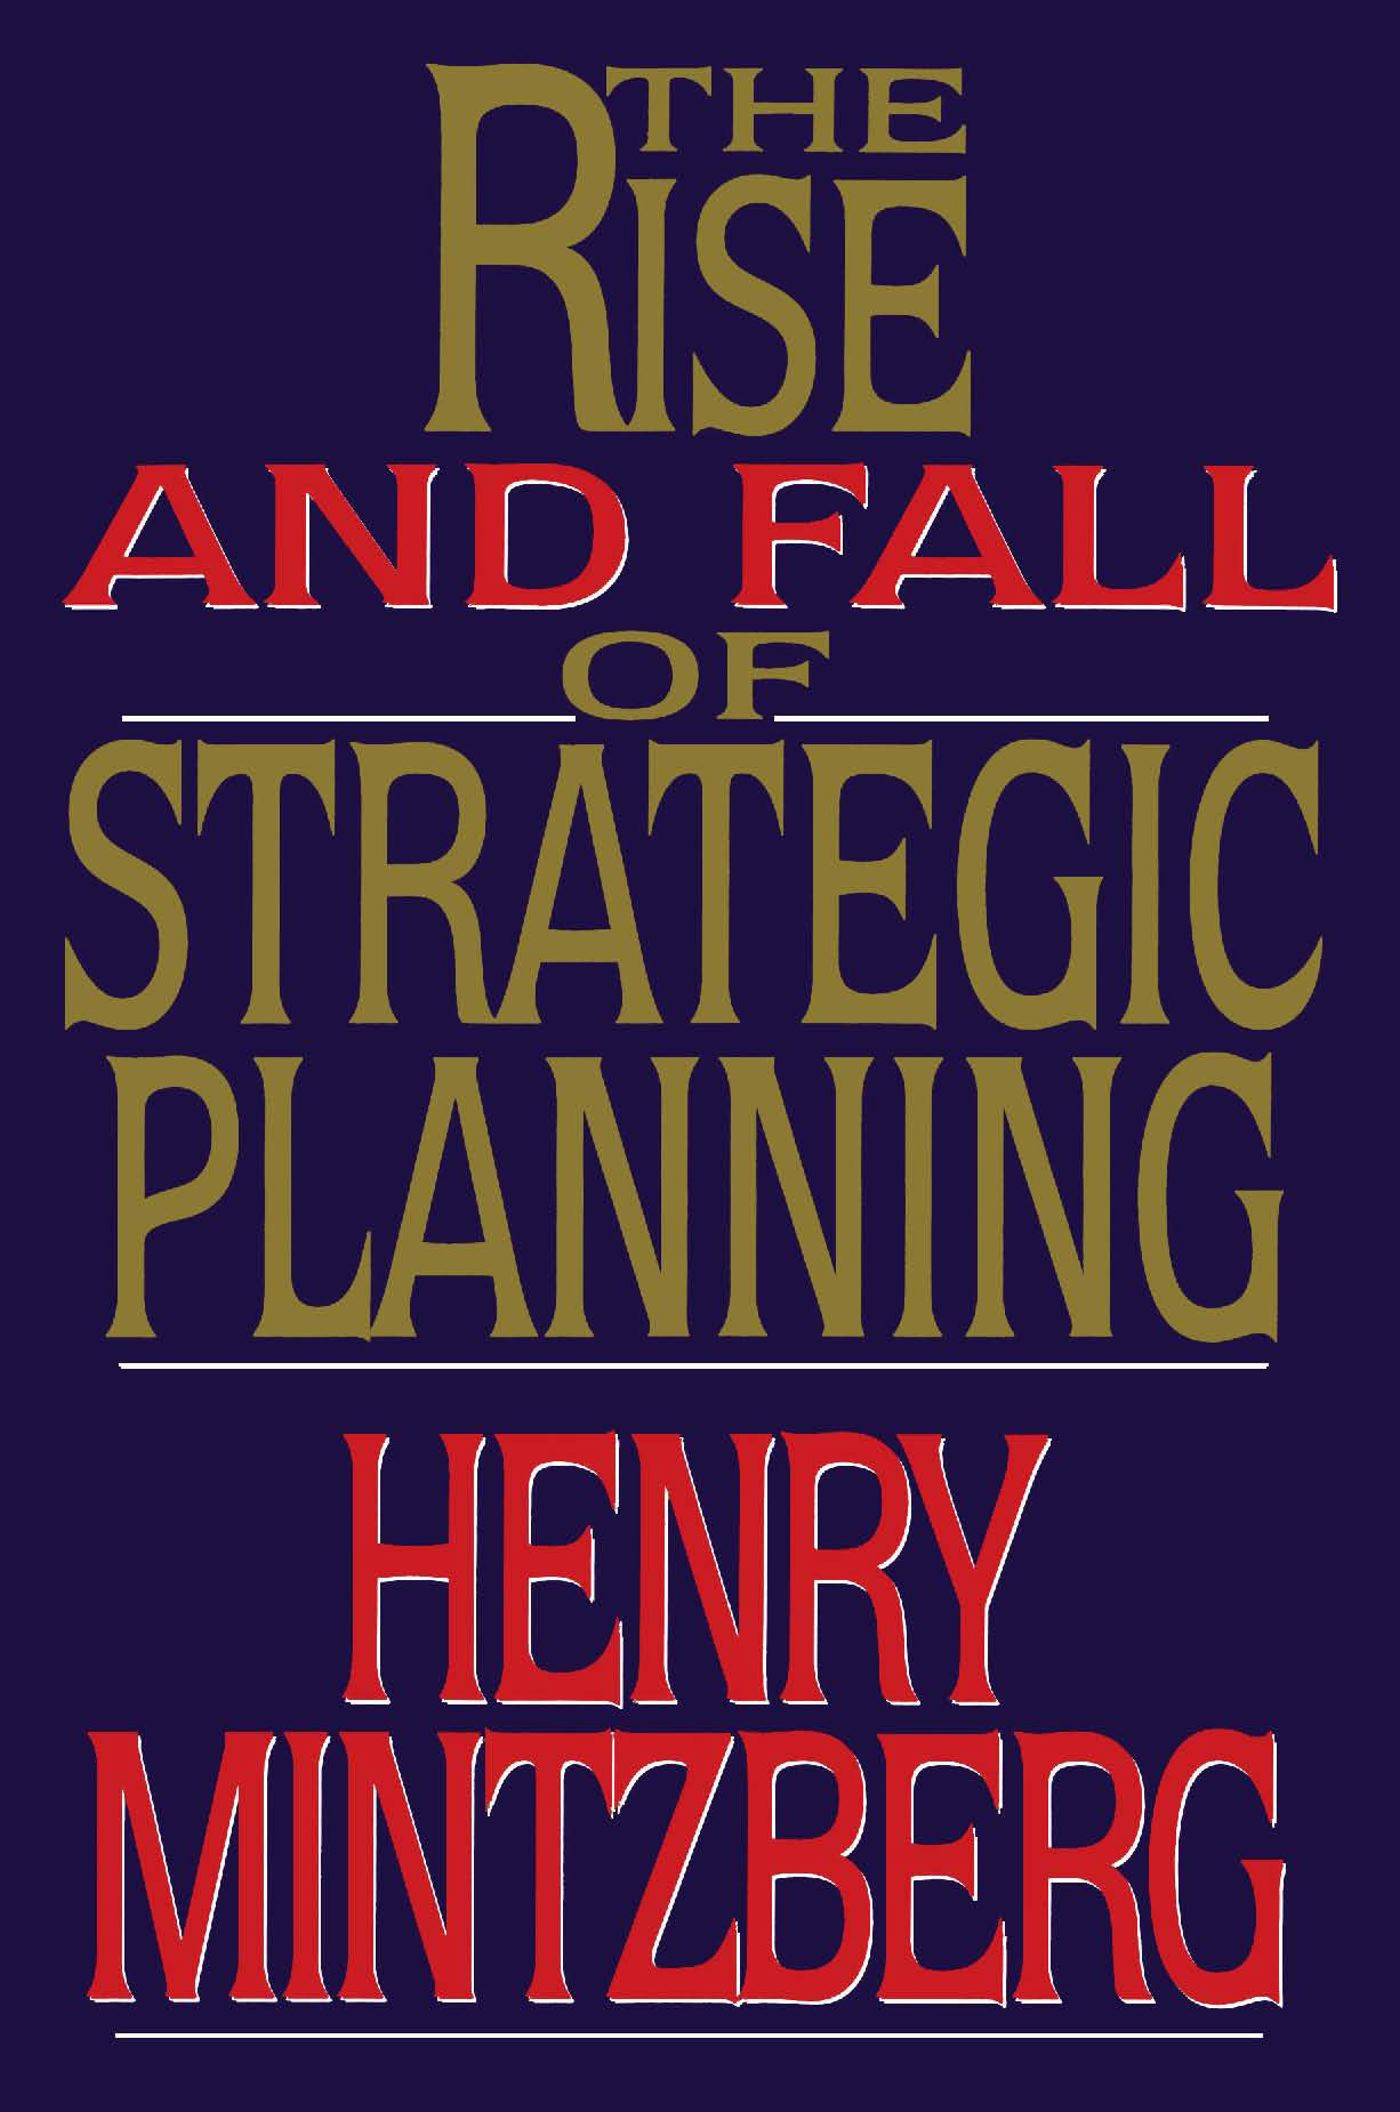 Rise and fall of strategic planning 9781476754765 hr